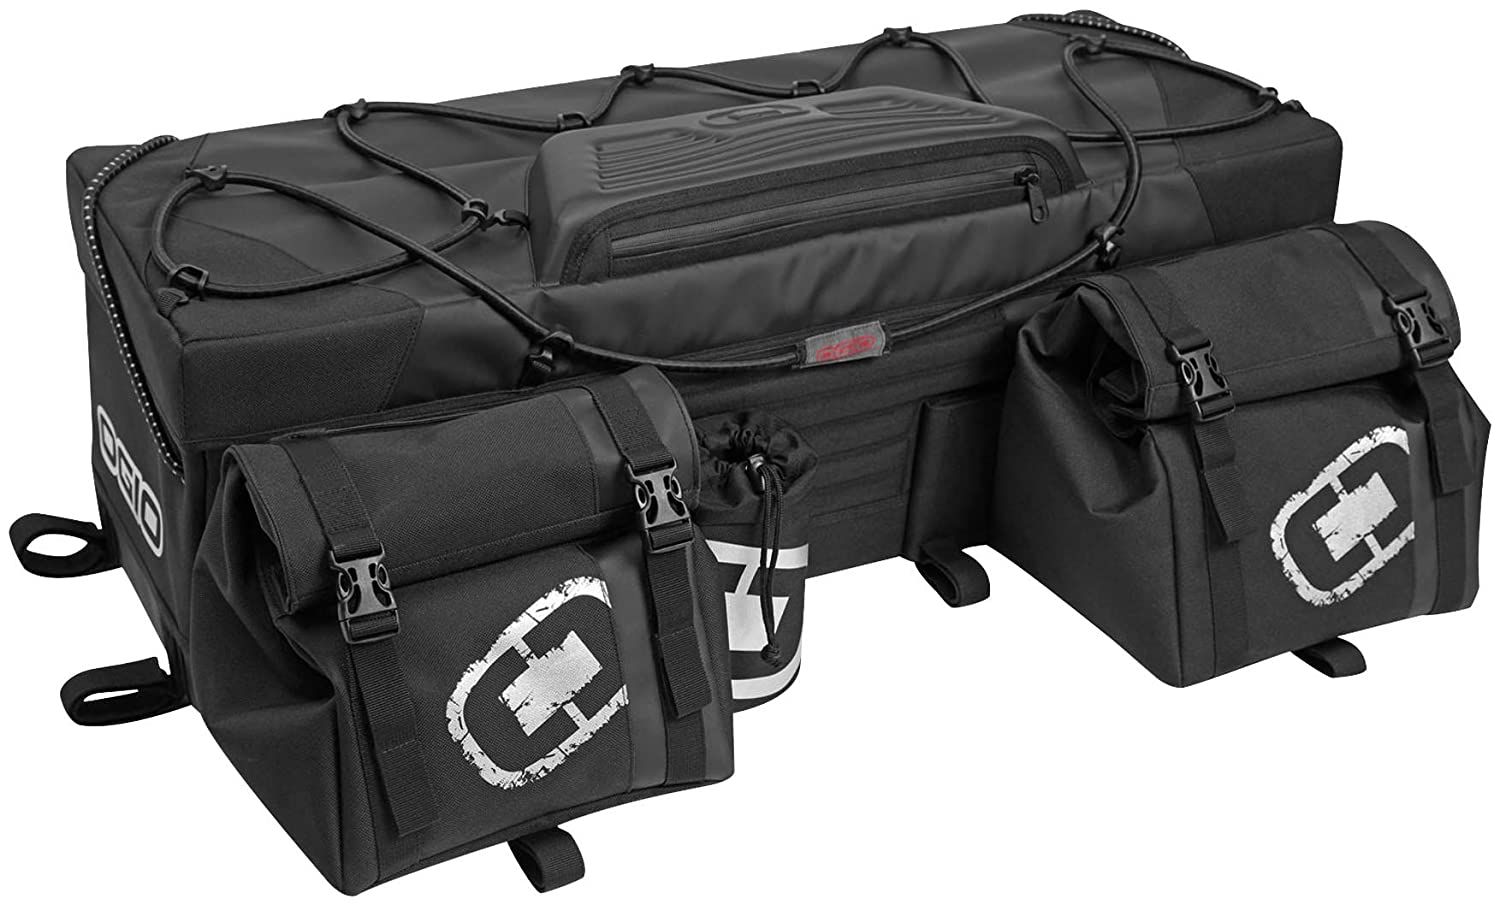 ogio 119003.36 Honcho Rear ATV Bag - Stealth Black